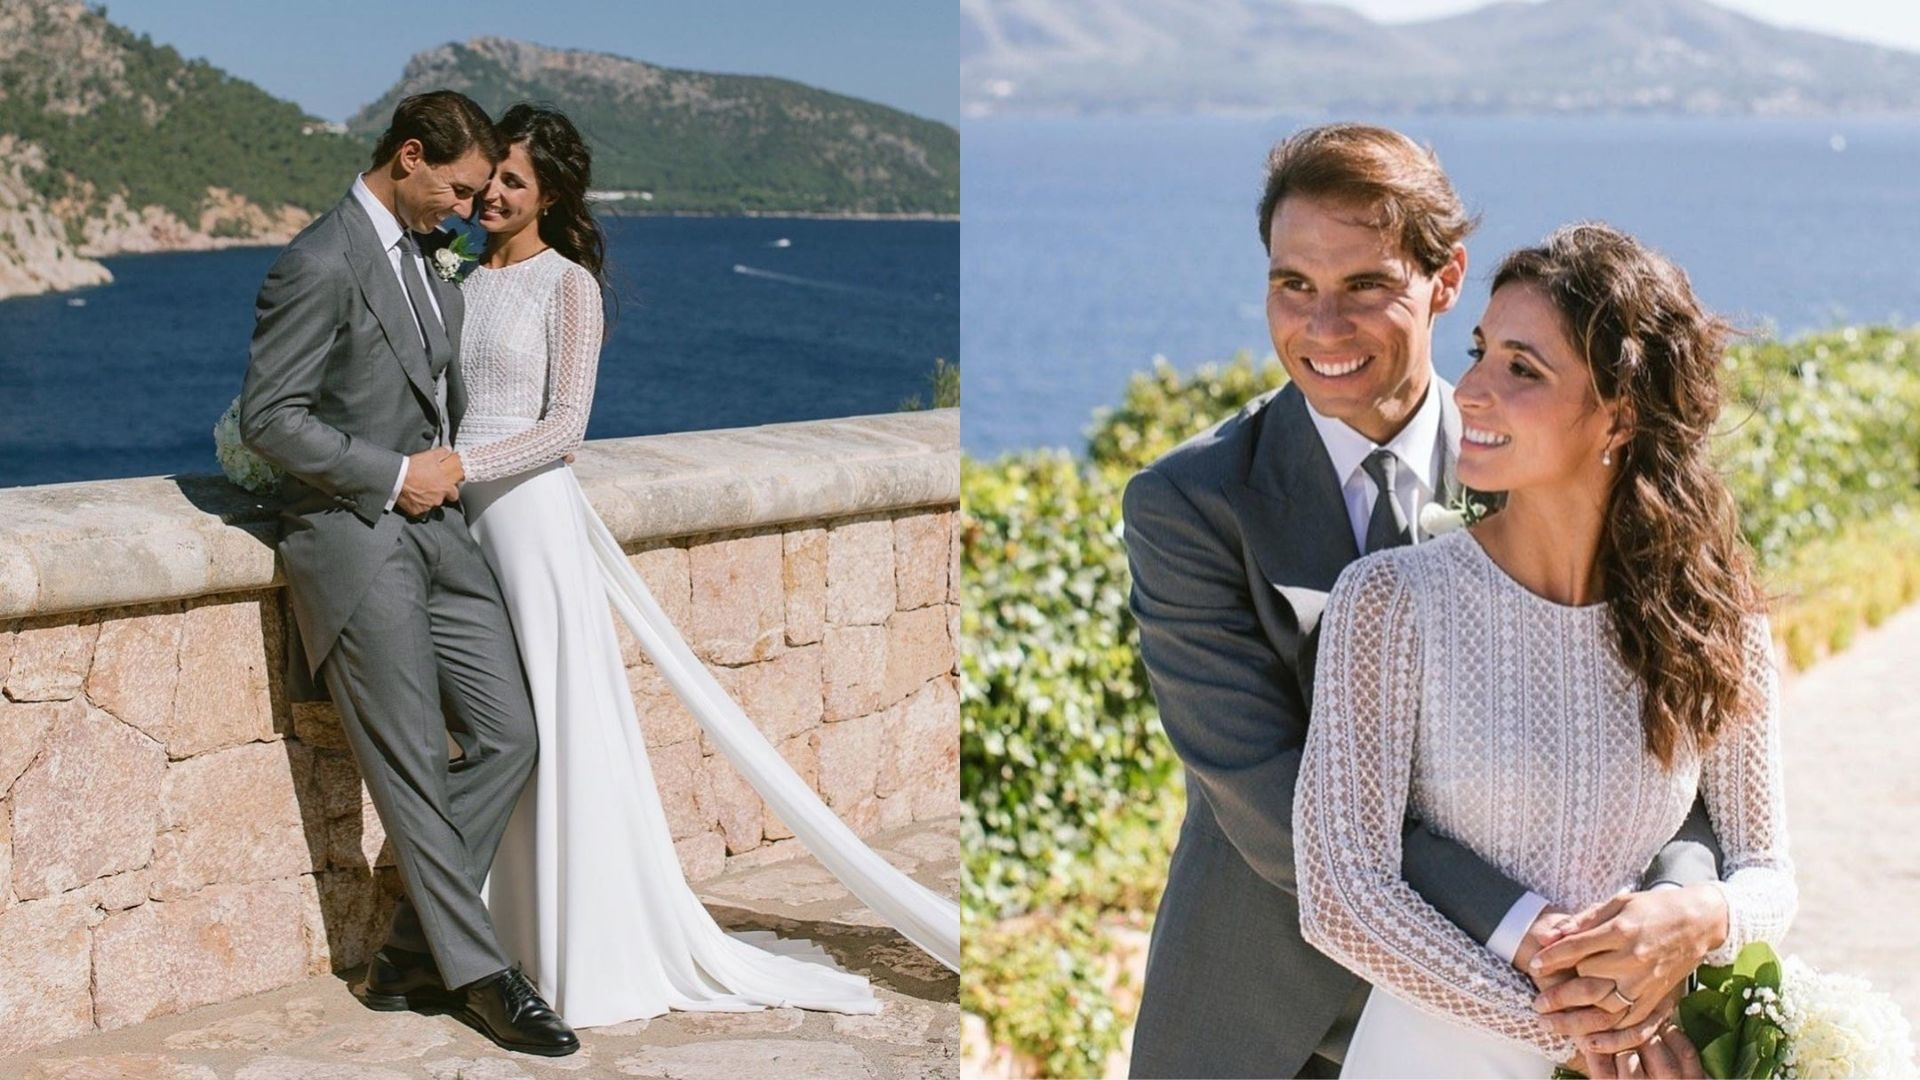 Rafael Nadal Just Got Married To His Long-Time Girlfriend Mery Perello